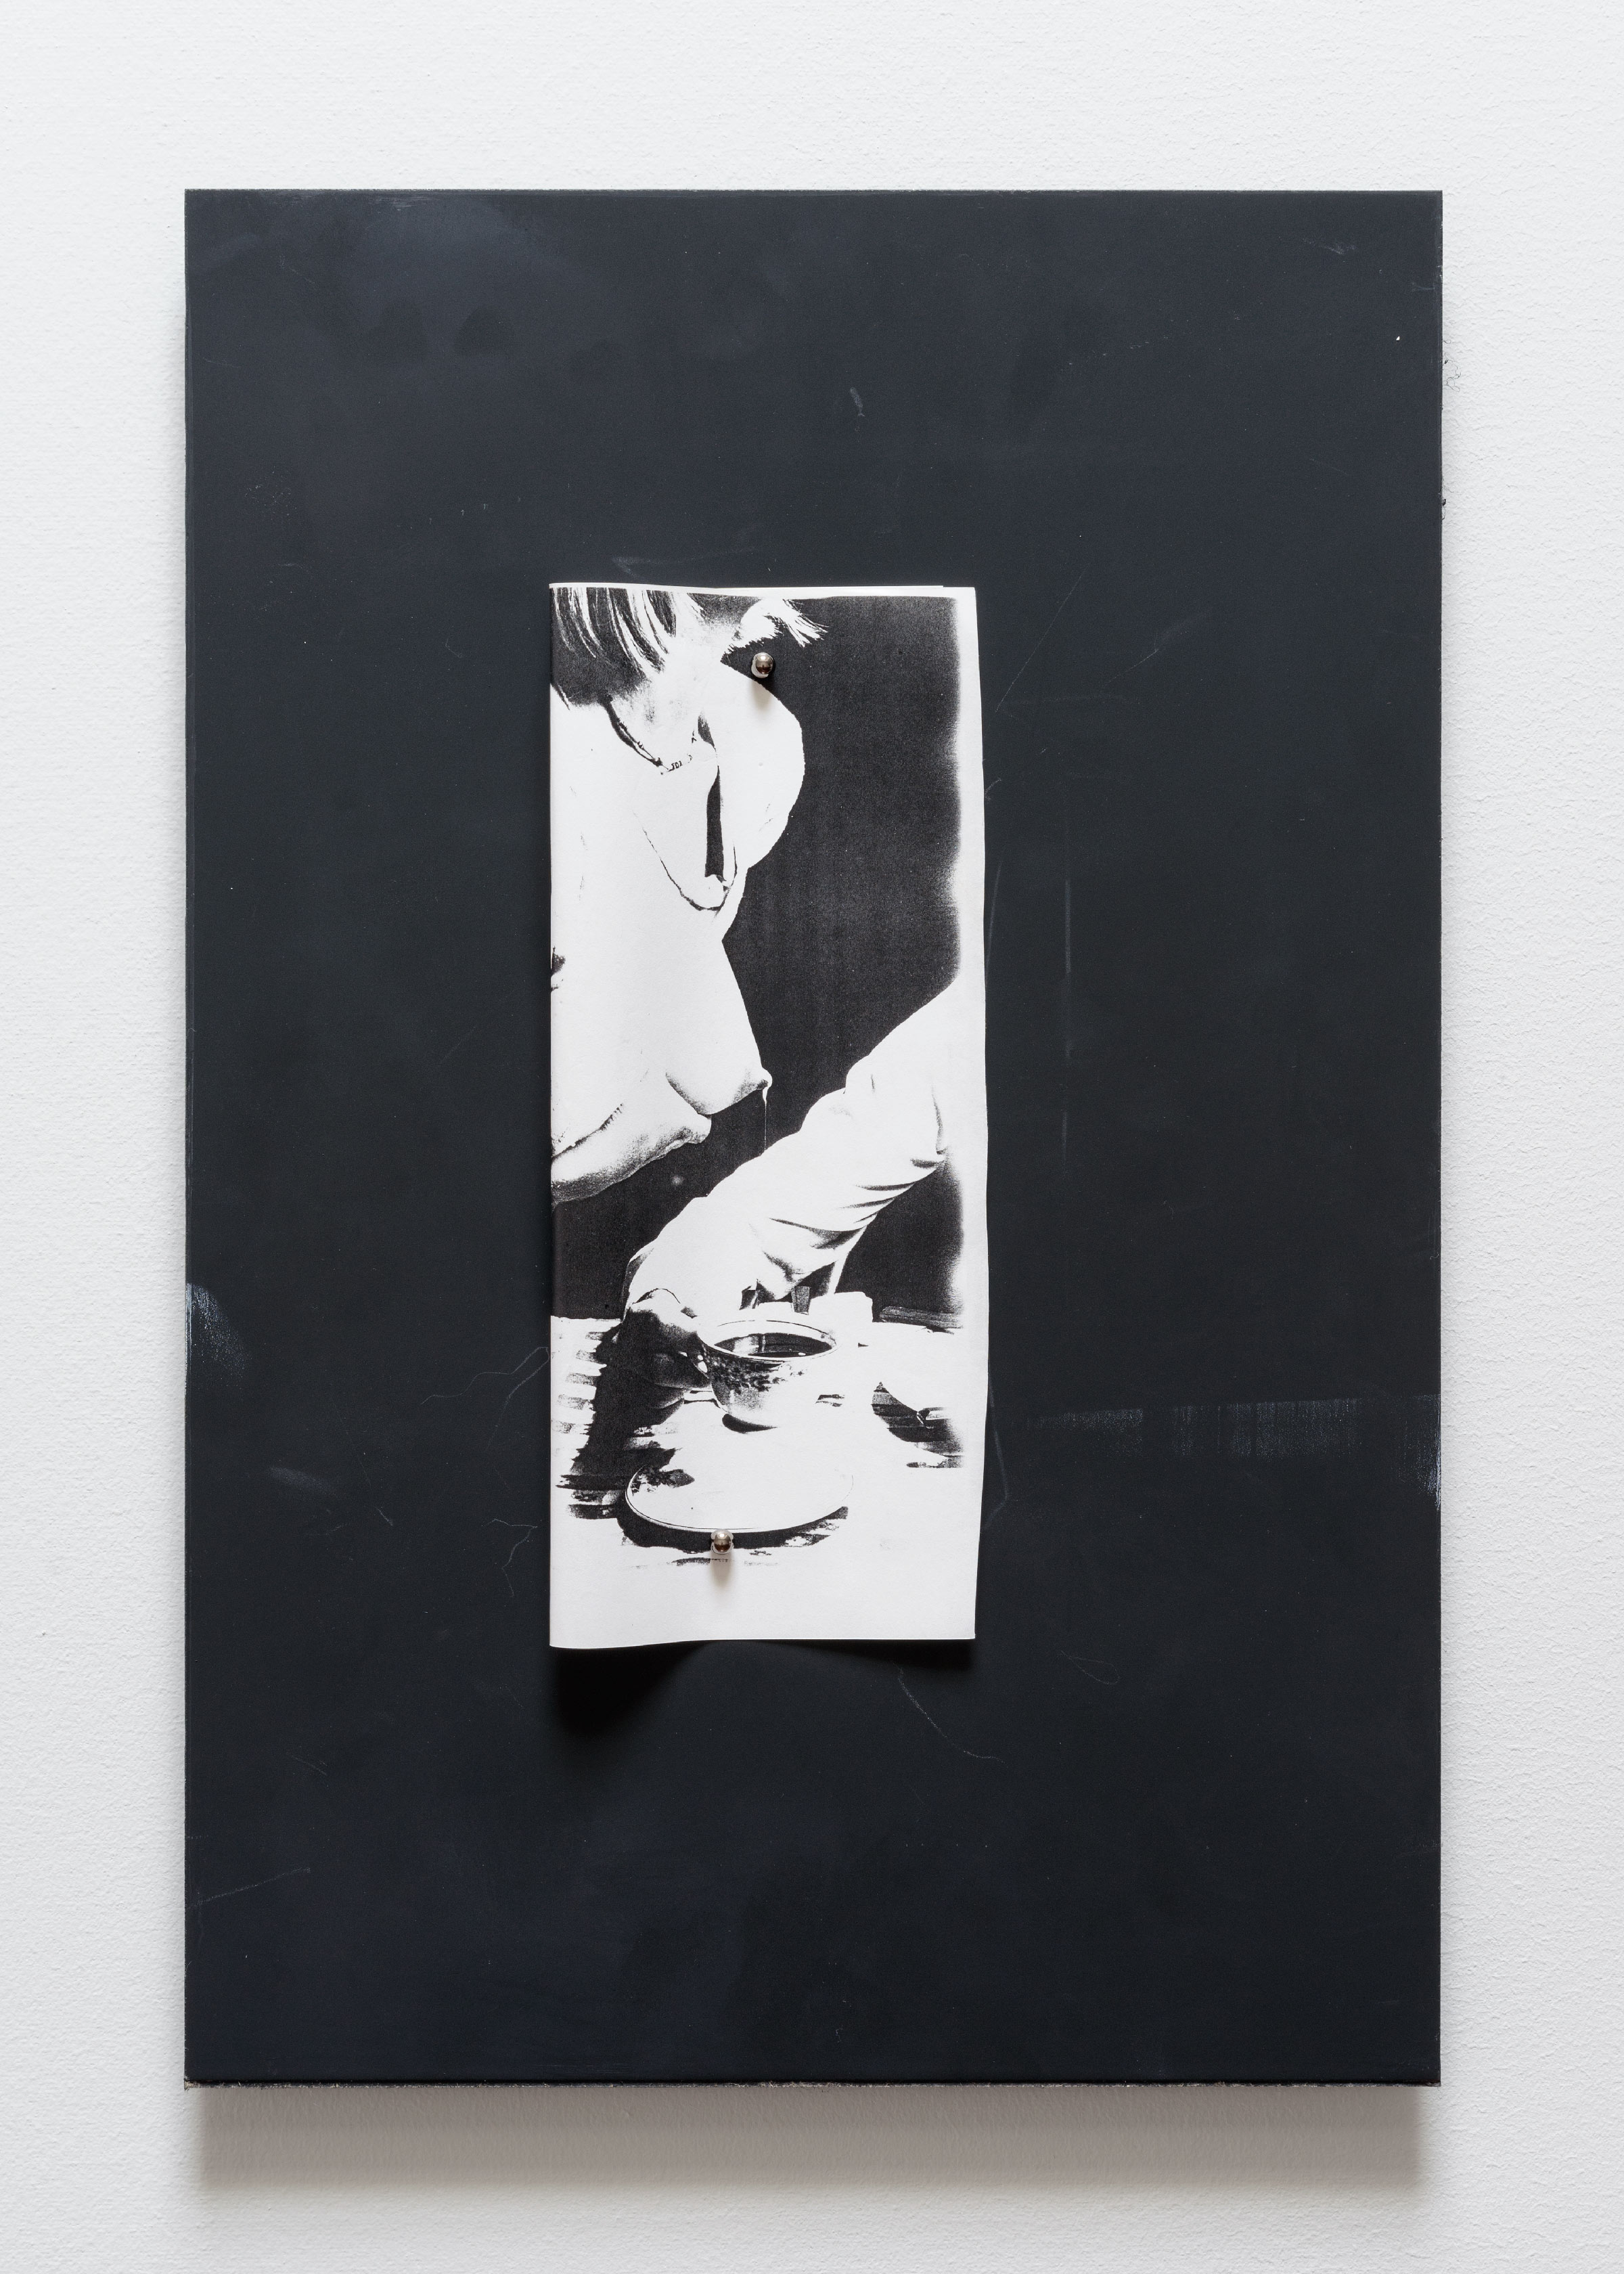 Gideon Barnett, 2015, found photocopy, chalkboard, magnets, 18 x 12 in (50 x 76 cm)